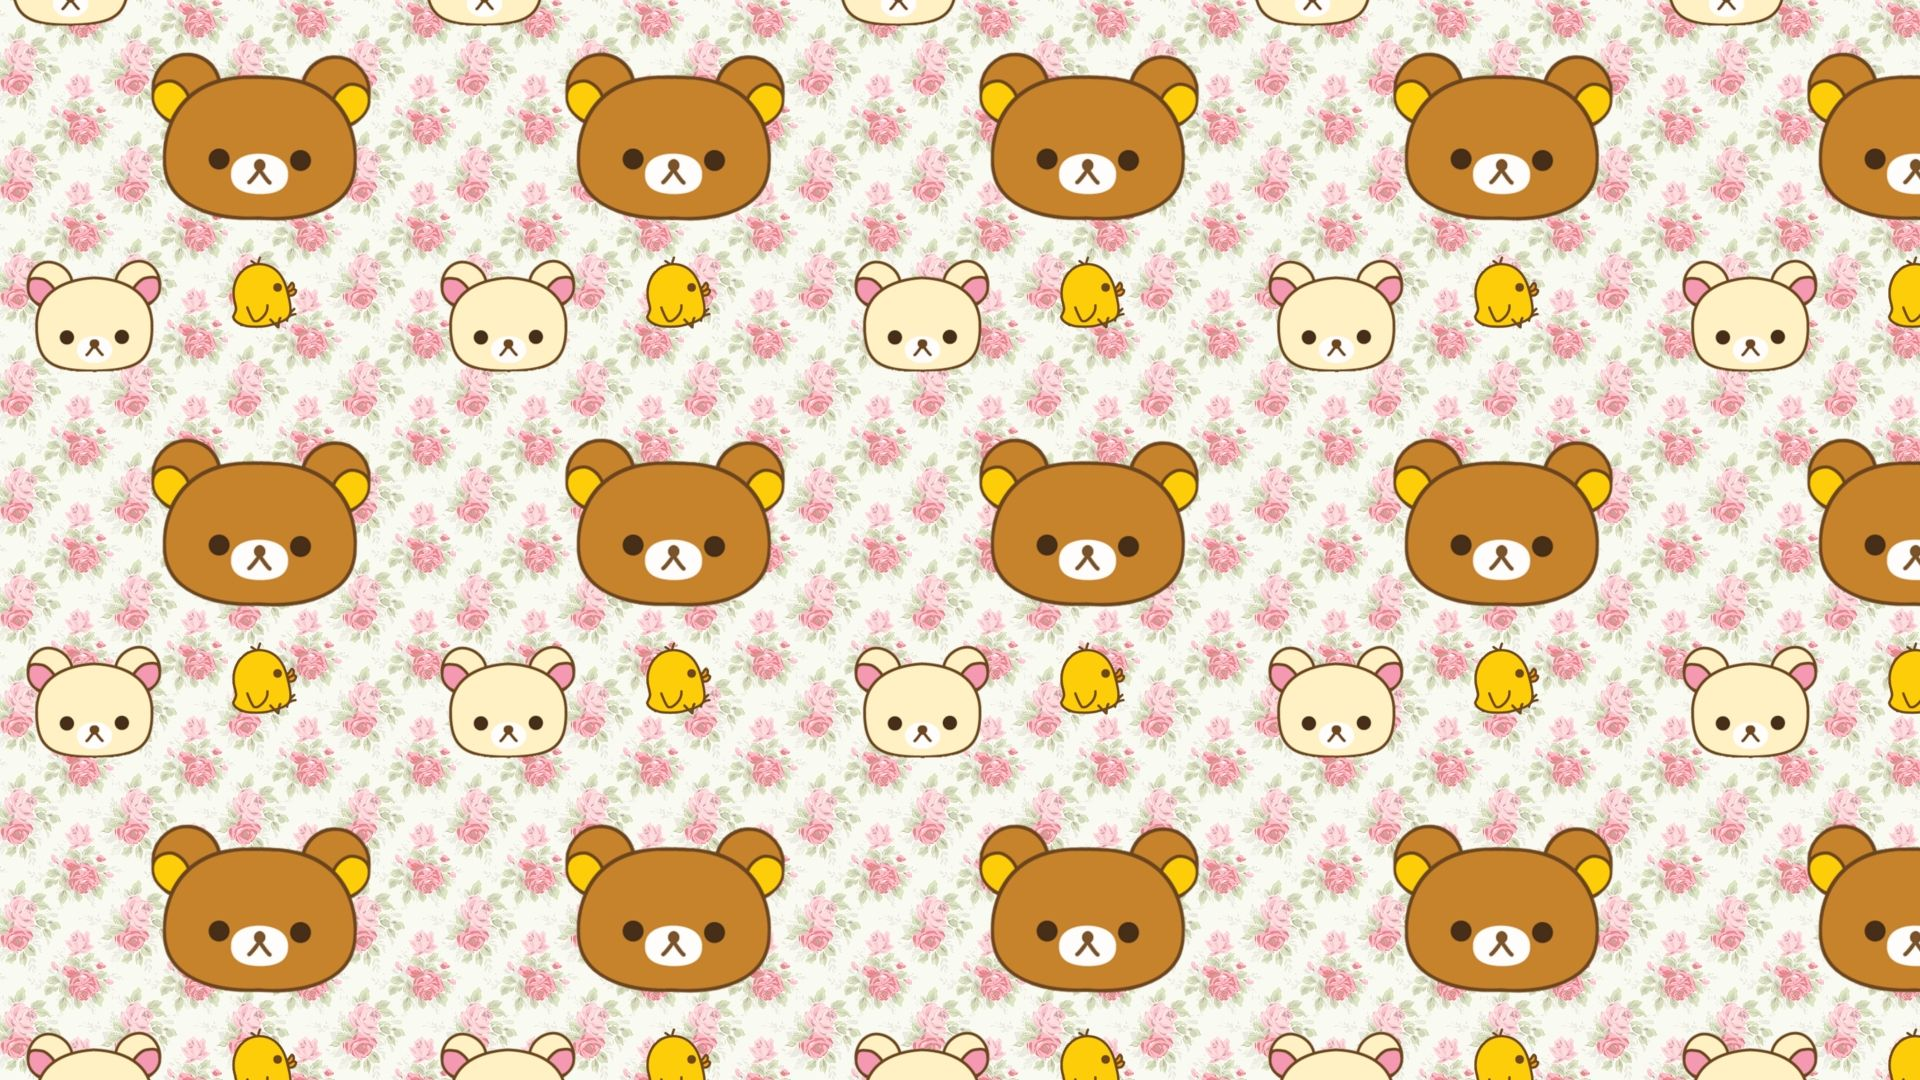 DeviantArt More Like Rilakkuma Wallpaper 1920x1080 by